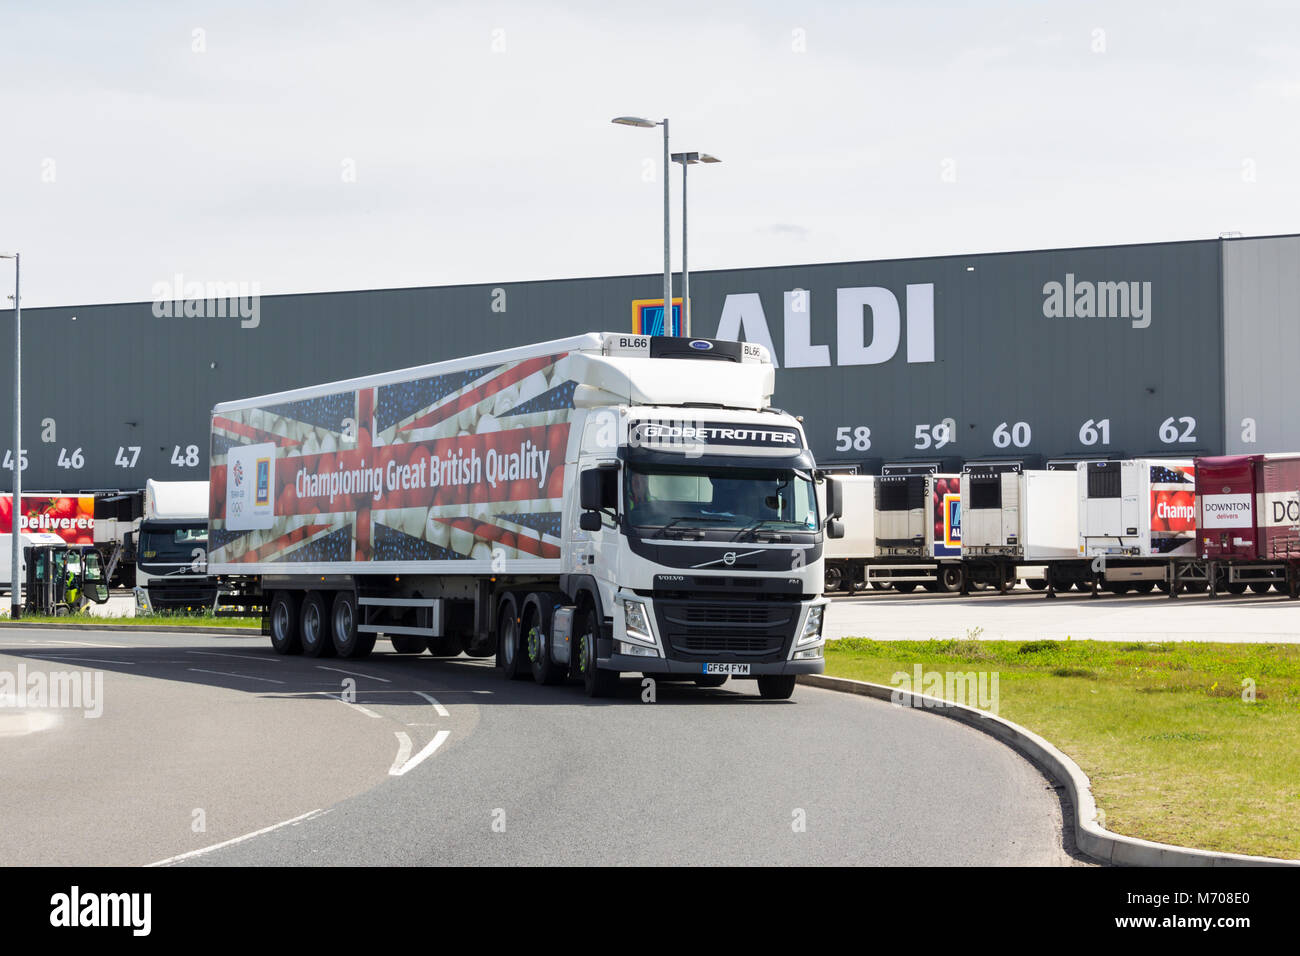 Aldi branded articulated lorry leaving the new Aldi Distribution warehouse at Logistics North, Over Hulton, Bolton. - Stock Image